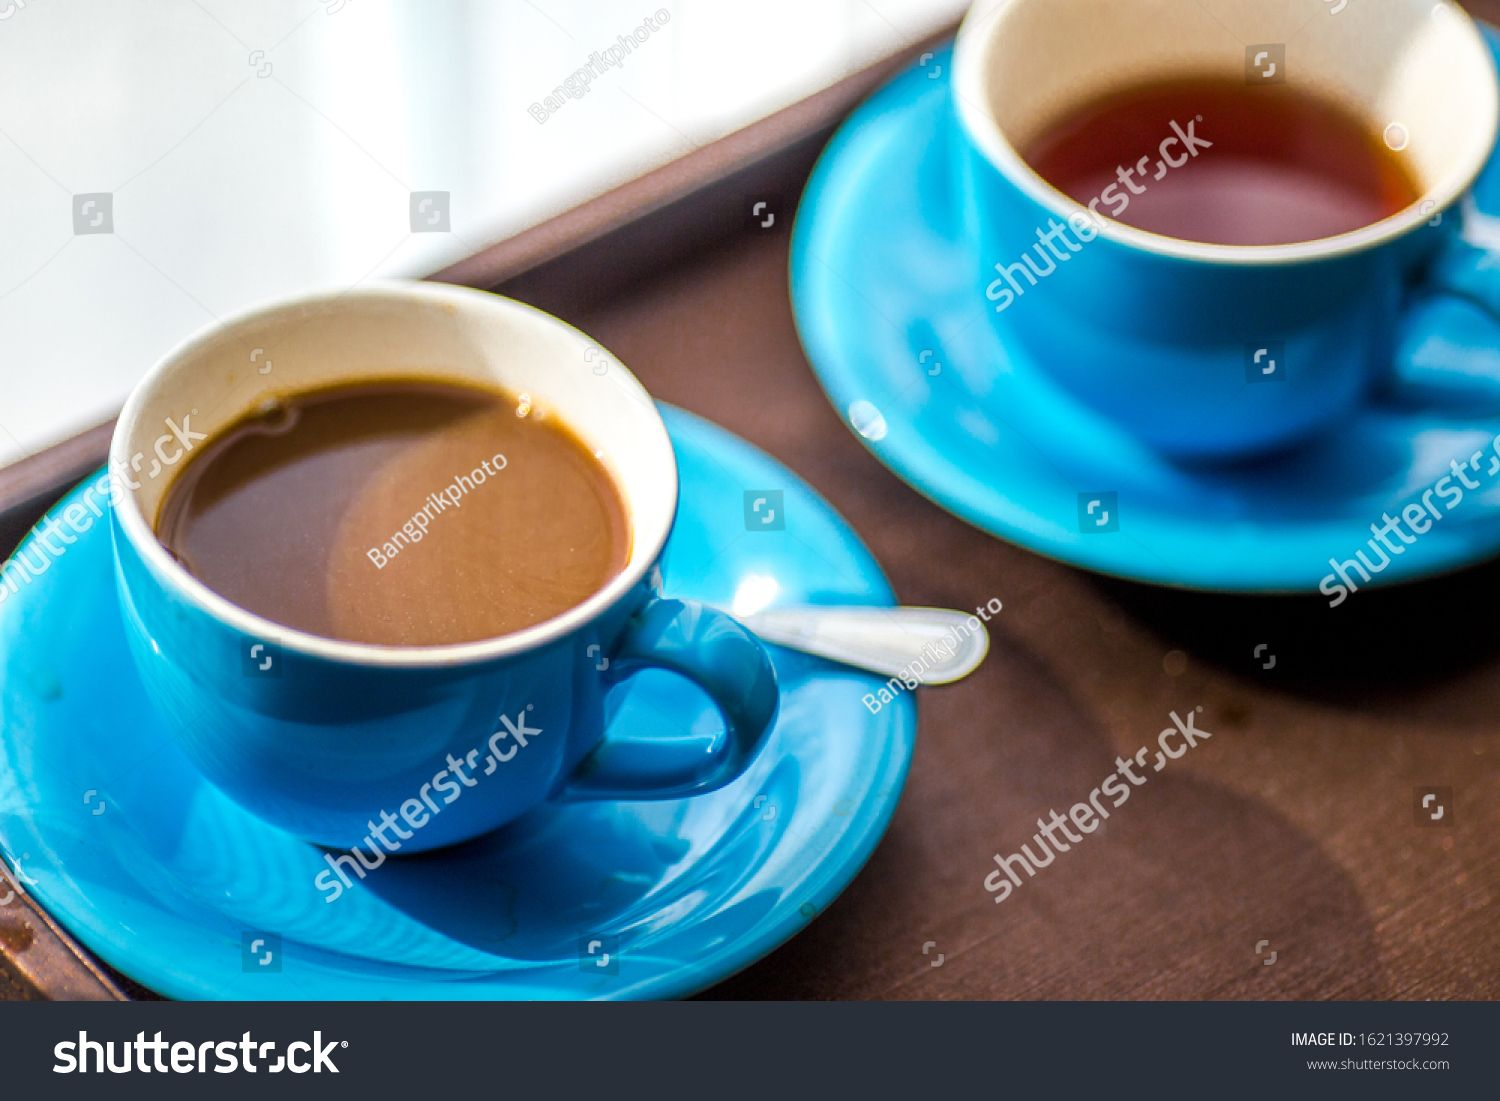 Blurred background view of a mug or coffee cup, a cup of water or a drink on the table, for customer service in a room or restaurant #Sponsored , #ad, #mug#coffee#cup#Blurred